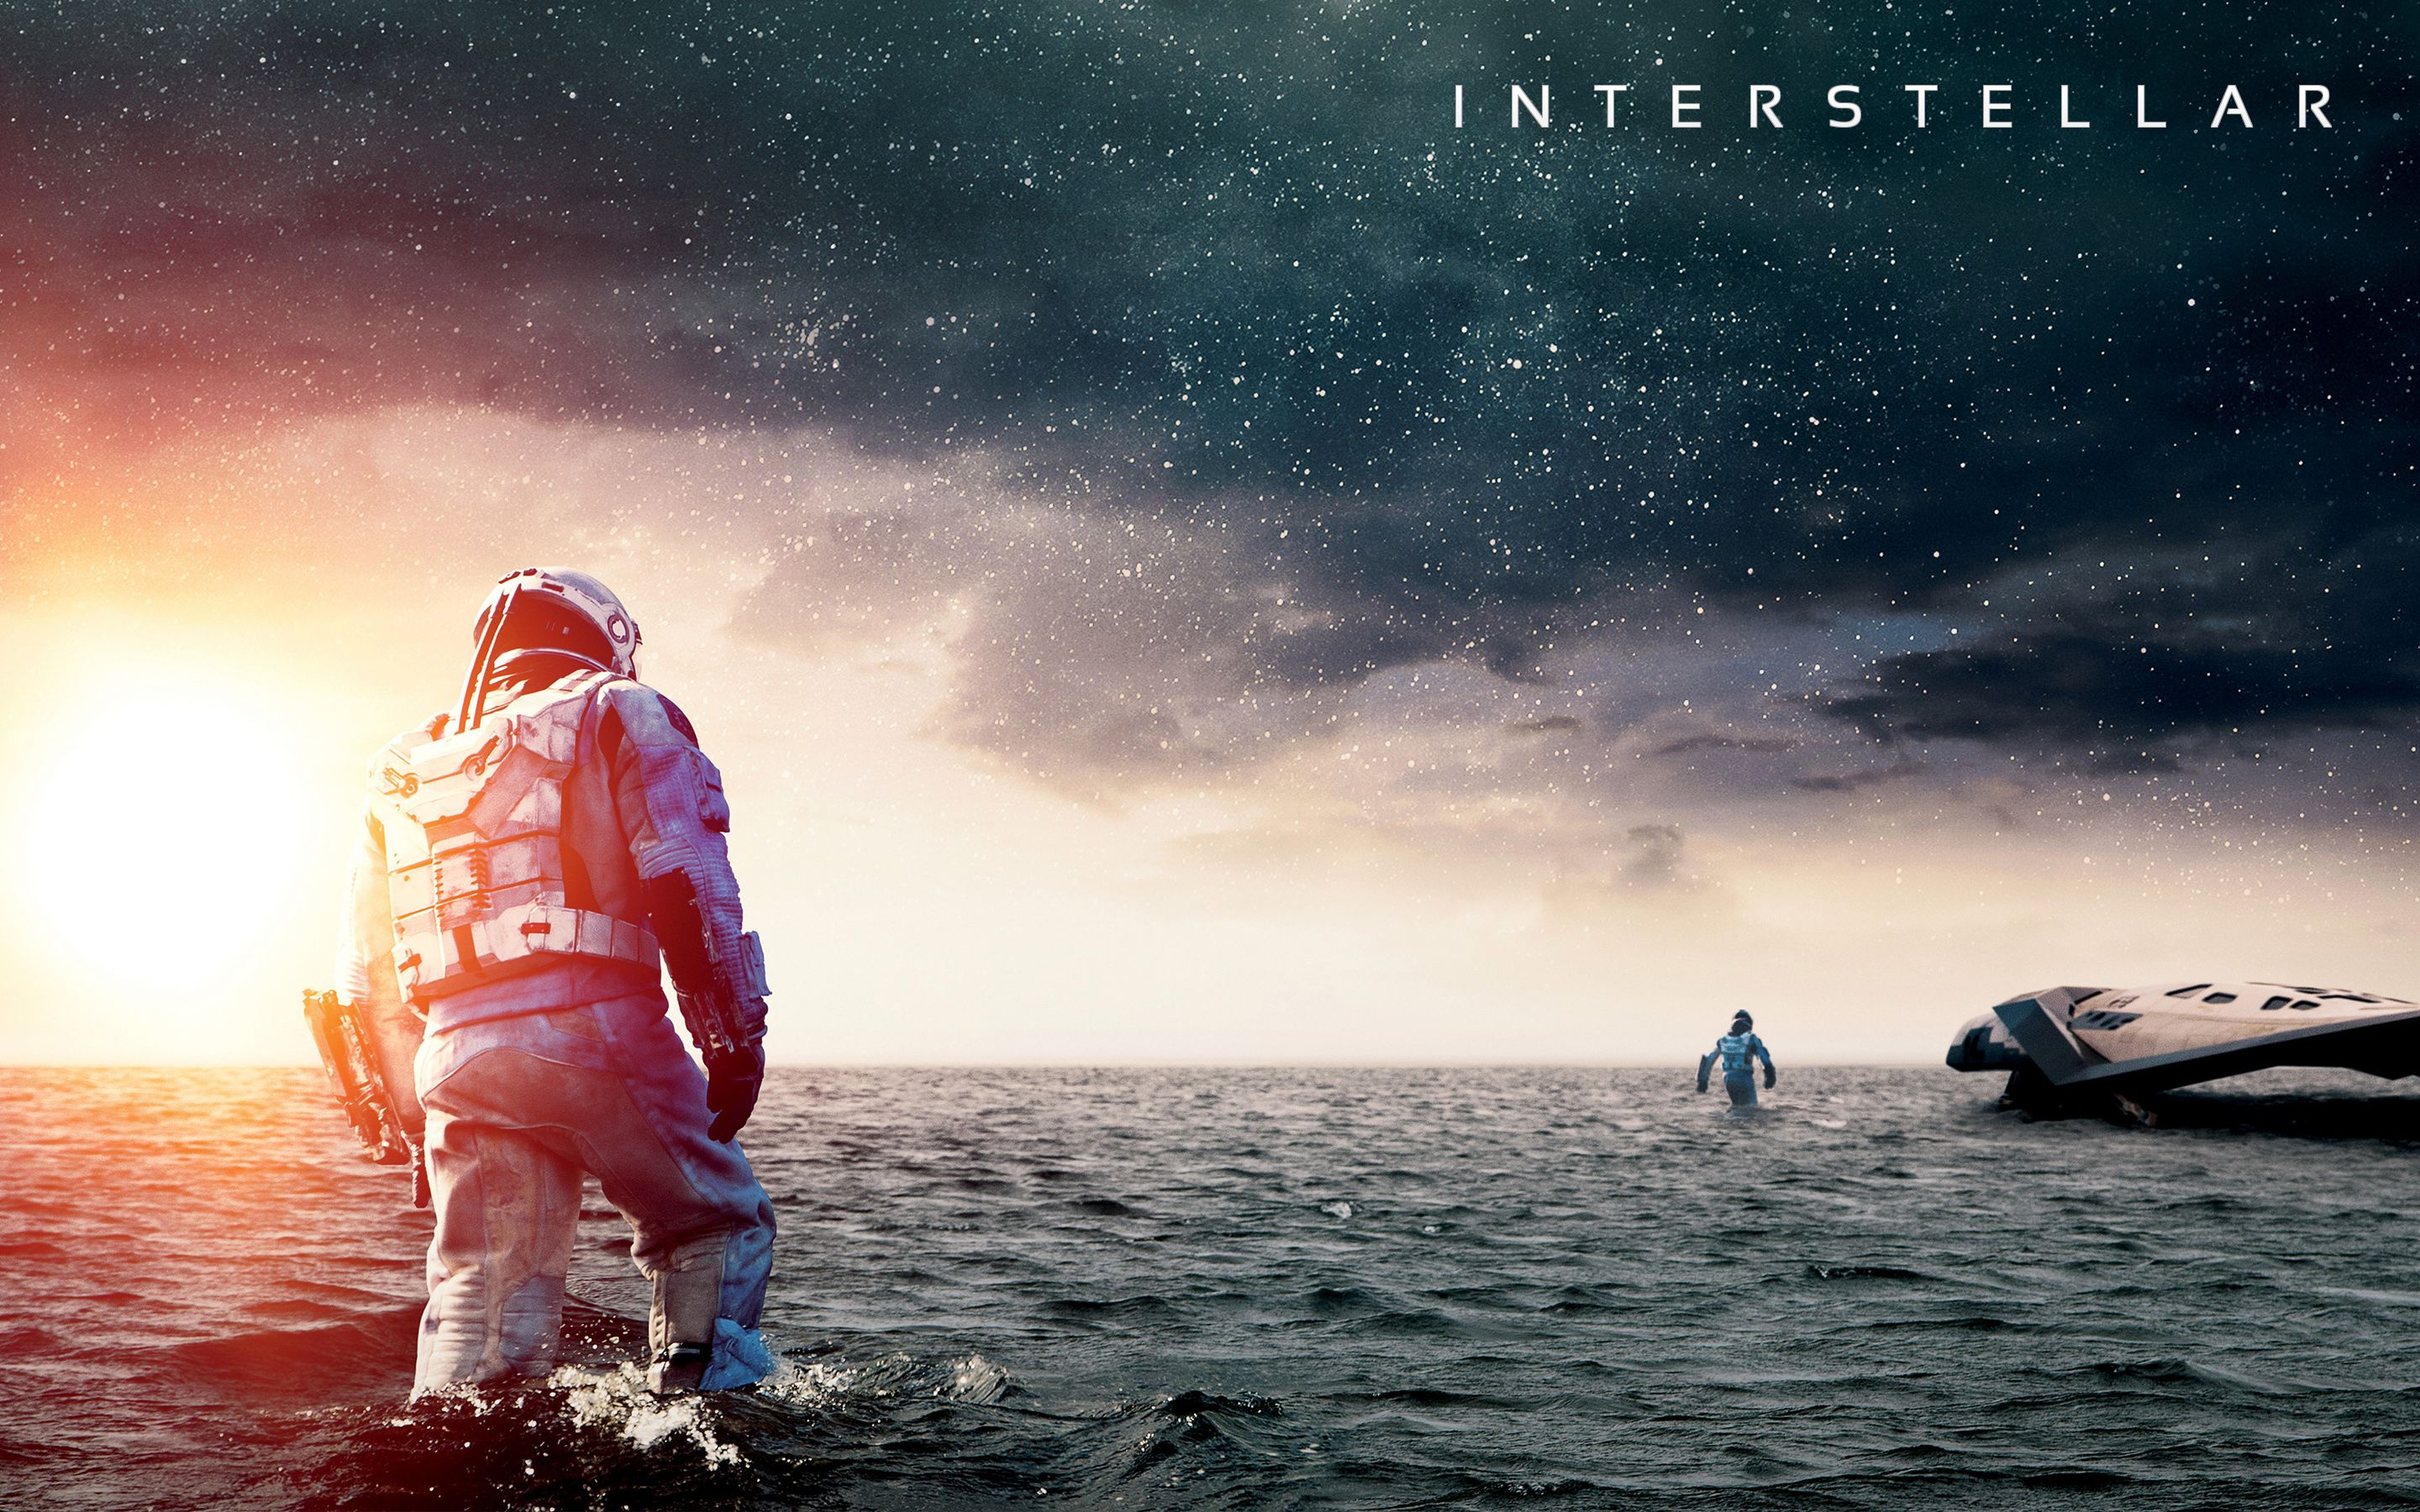 Interstellar Wallpaper Peliculas Completas Hd Ver